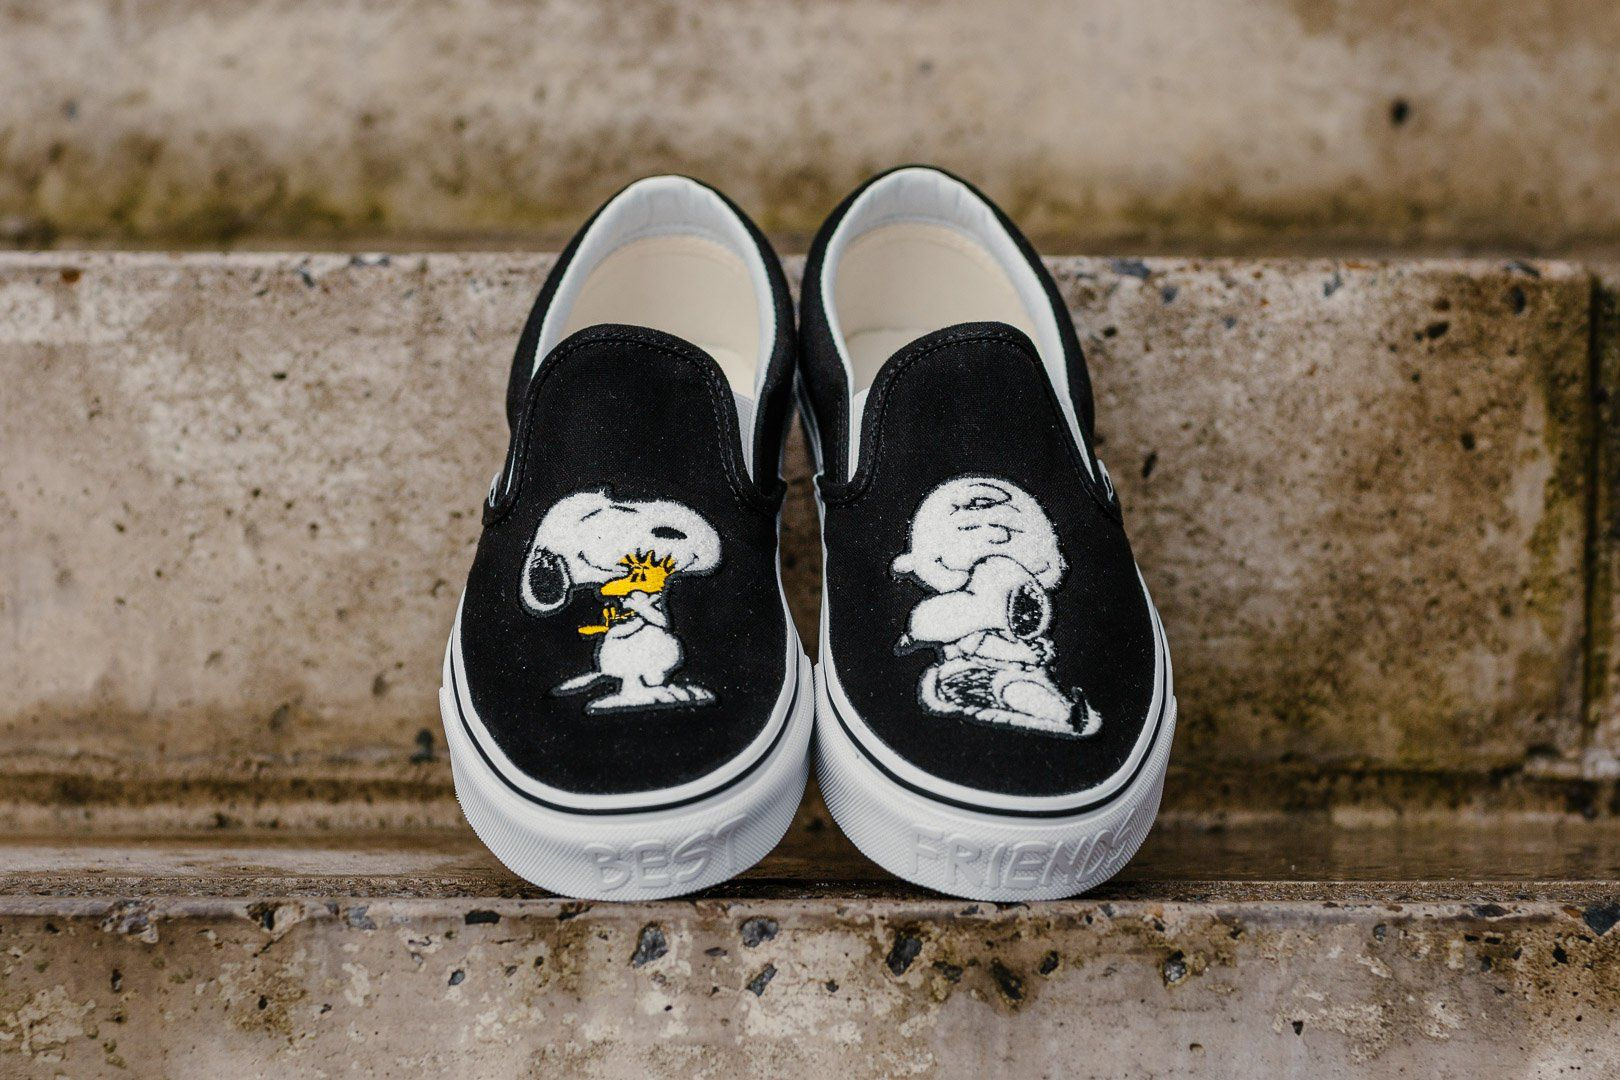 c741a8c9ee Product Name  Vans x Peanuts Classic Slip-On  Best Friends  VA38F7QTZ  Specifications  Rep the ultimate buddy homage in this Snoopy and Charlie  Brown  Best ...